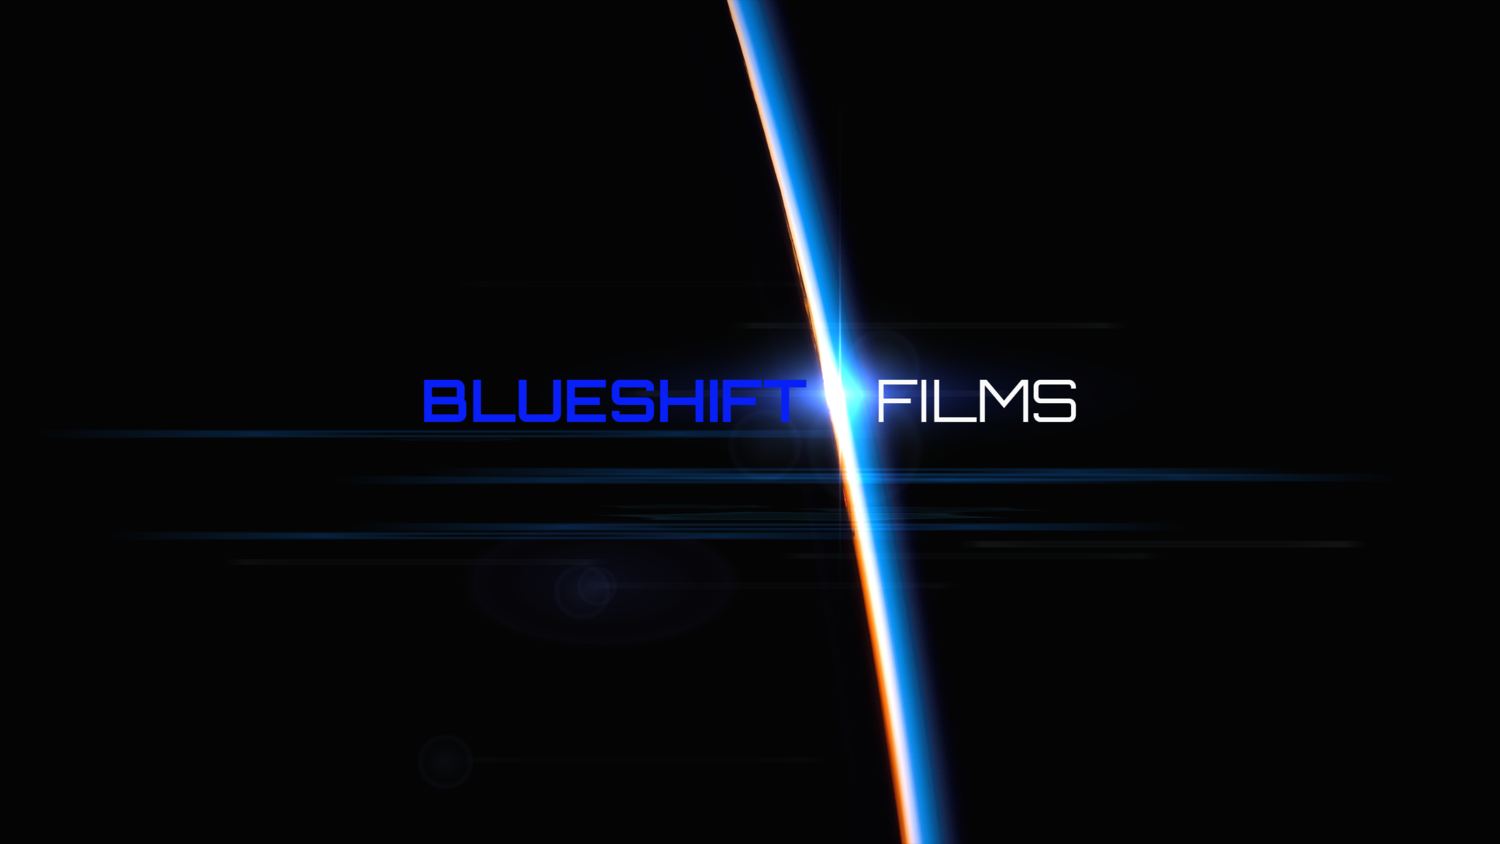 Blueshift Films